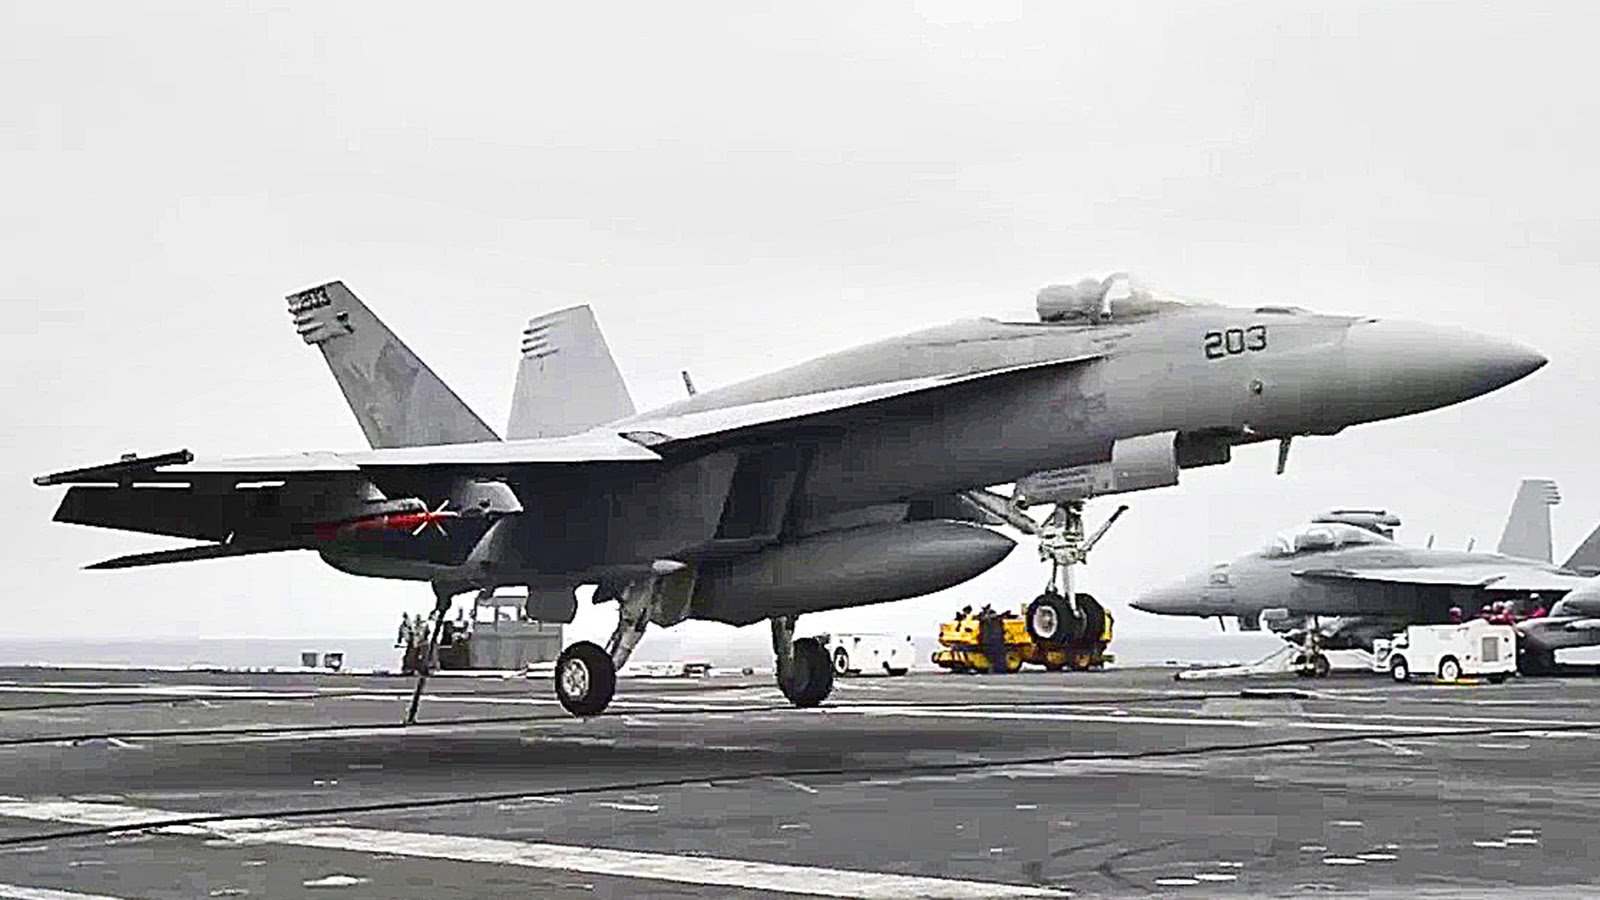 Aircraft Carrier: F-18 Super Hornet Landings, Flight Deck Operations